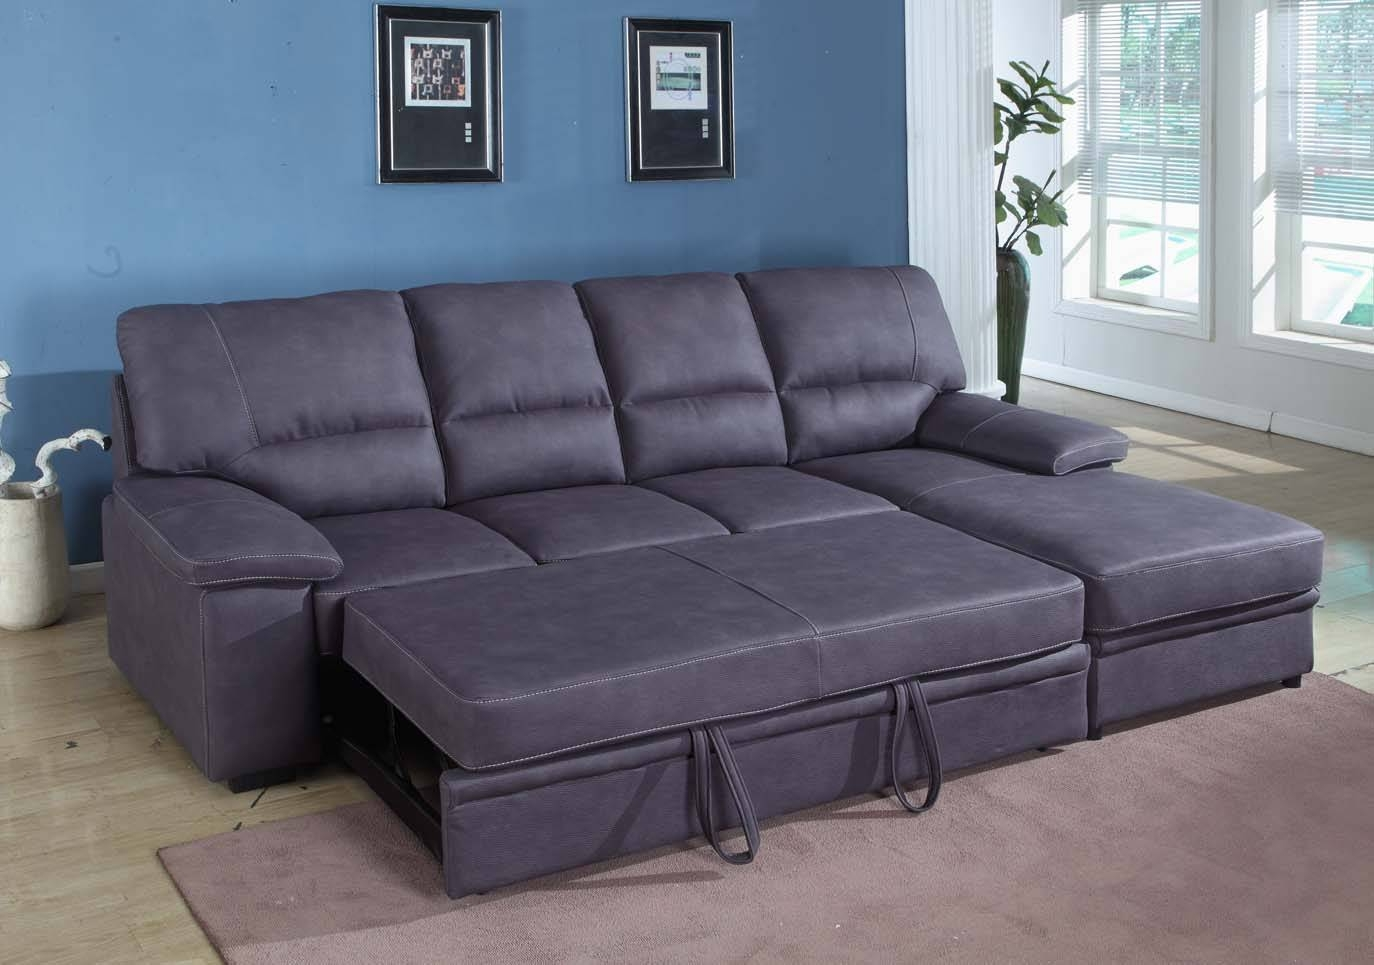 Trend Cheap Sectional Sleeper Sofa 96 On Sectional Sofas Dallas regarding Dallas Sleeper Sofas (Image 15 of 15)